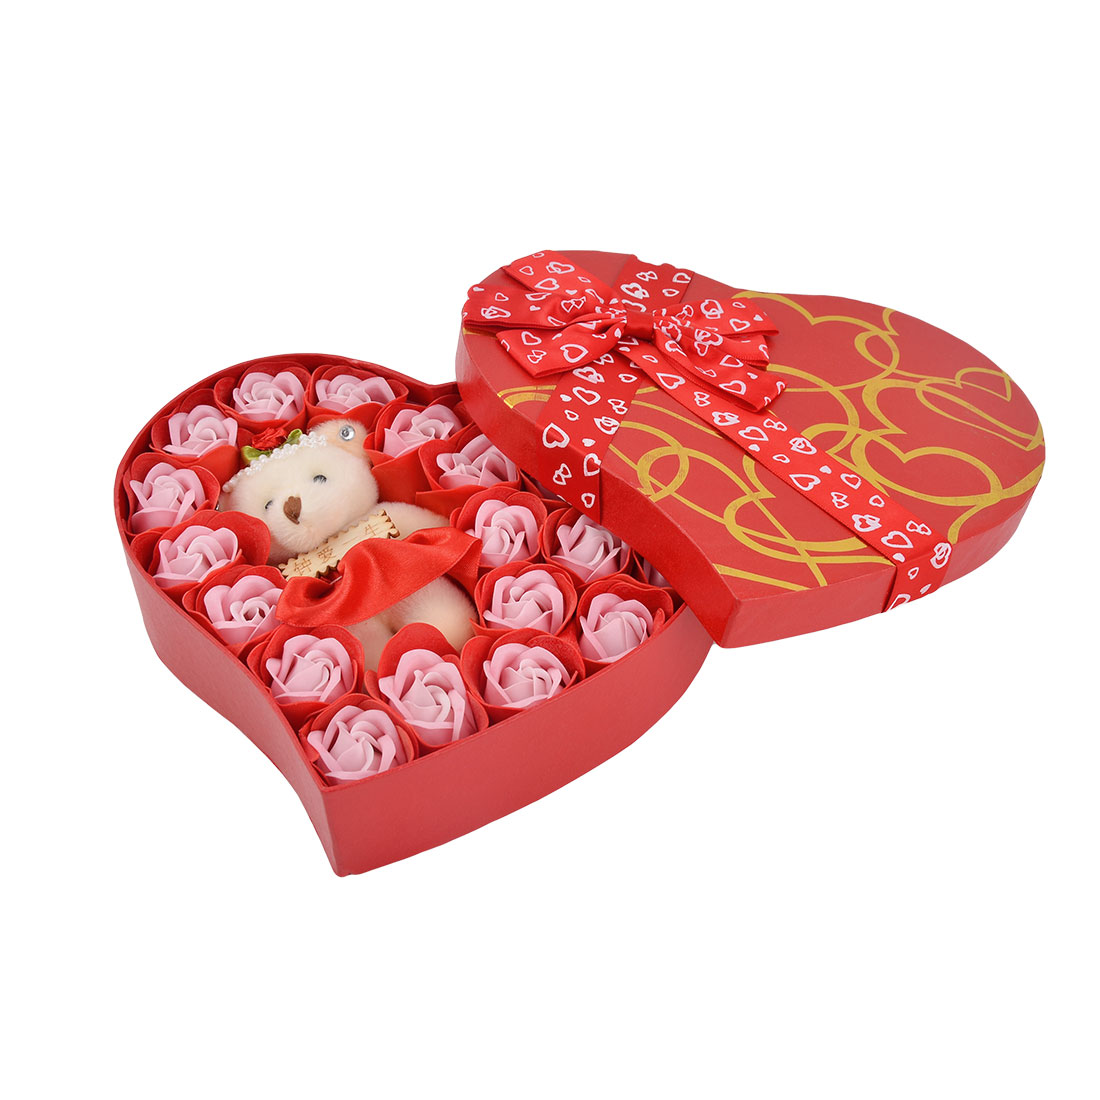 Festival Gift Heart Shaped Box Artificial Rose Flower Decor Bath Soap Petal Red 22 in 1